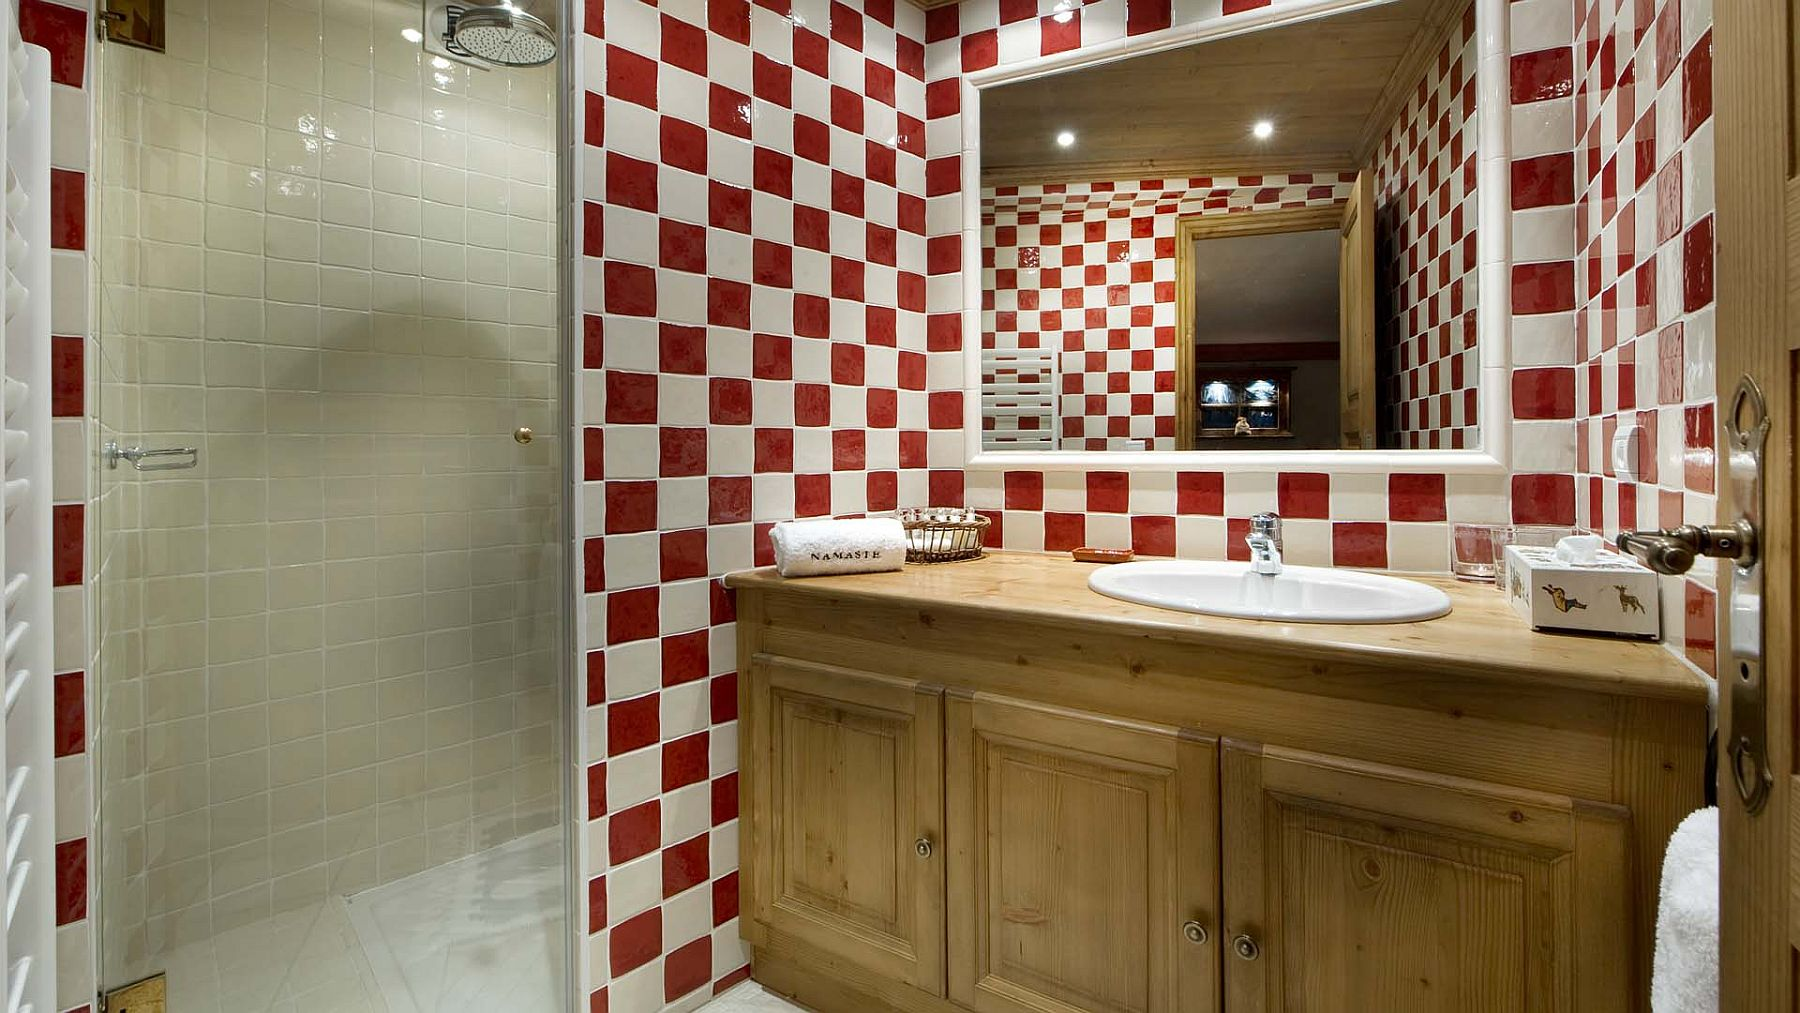 Bathroom in red and white and wooden vanity